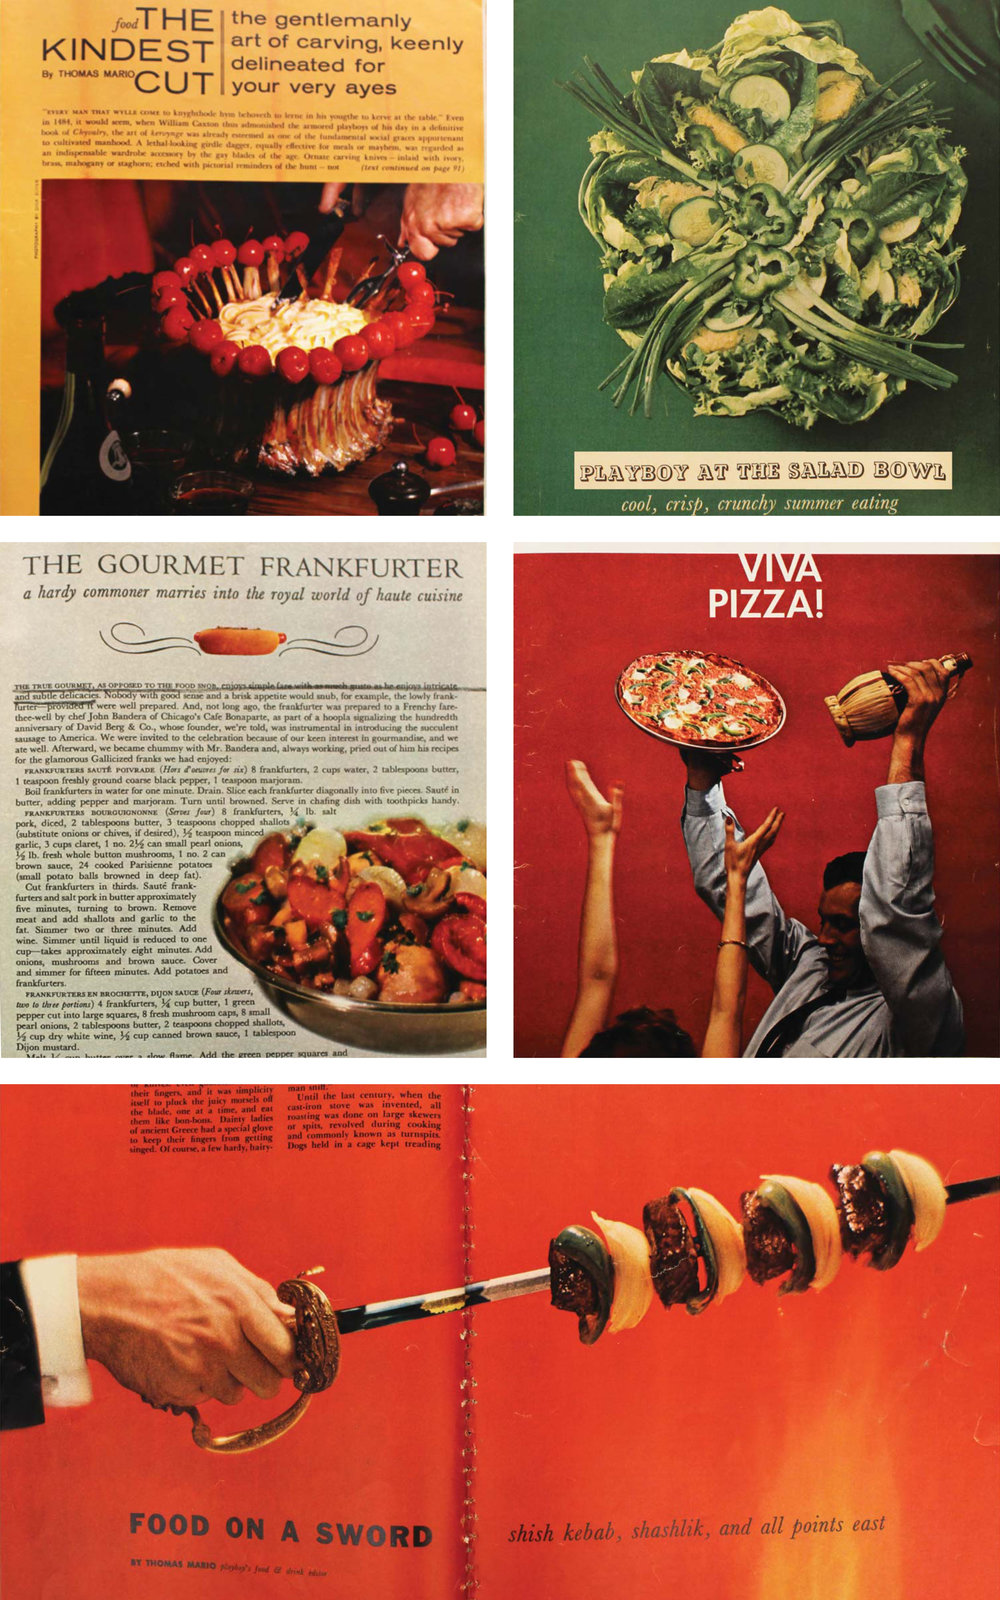 Figure 5:  An assortment of recipes from  Playboy  Magazine; clockwise from top left:  The Kindest Cut ,  November 1961 ;  Playboy at the Salad Bowl ,  July  1956; Viva  Pizza ,  May  1959; Food  on a Sword ,  August  1956; The  Gourmet Frankfurter ,  September 1960 .  In almost every issue food writer Thomas Mario includes a series of recipes to be prepared by the Playboy. Hearty, masculine foods (loins, cutlets, and roasts) as well as lighter fare (soups, salads, and fish) reflect the social anxieties surrounding masculinity in food space through their written articles and required ingredients. The text serves as a direct affront to domestic methods of food preparation and emphasizes the performative, more masculine aspects of cooking as a social activity. The ingredients used also appeal to the Playboy as they are often non-perishable, easy to use, and easier to market.